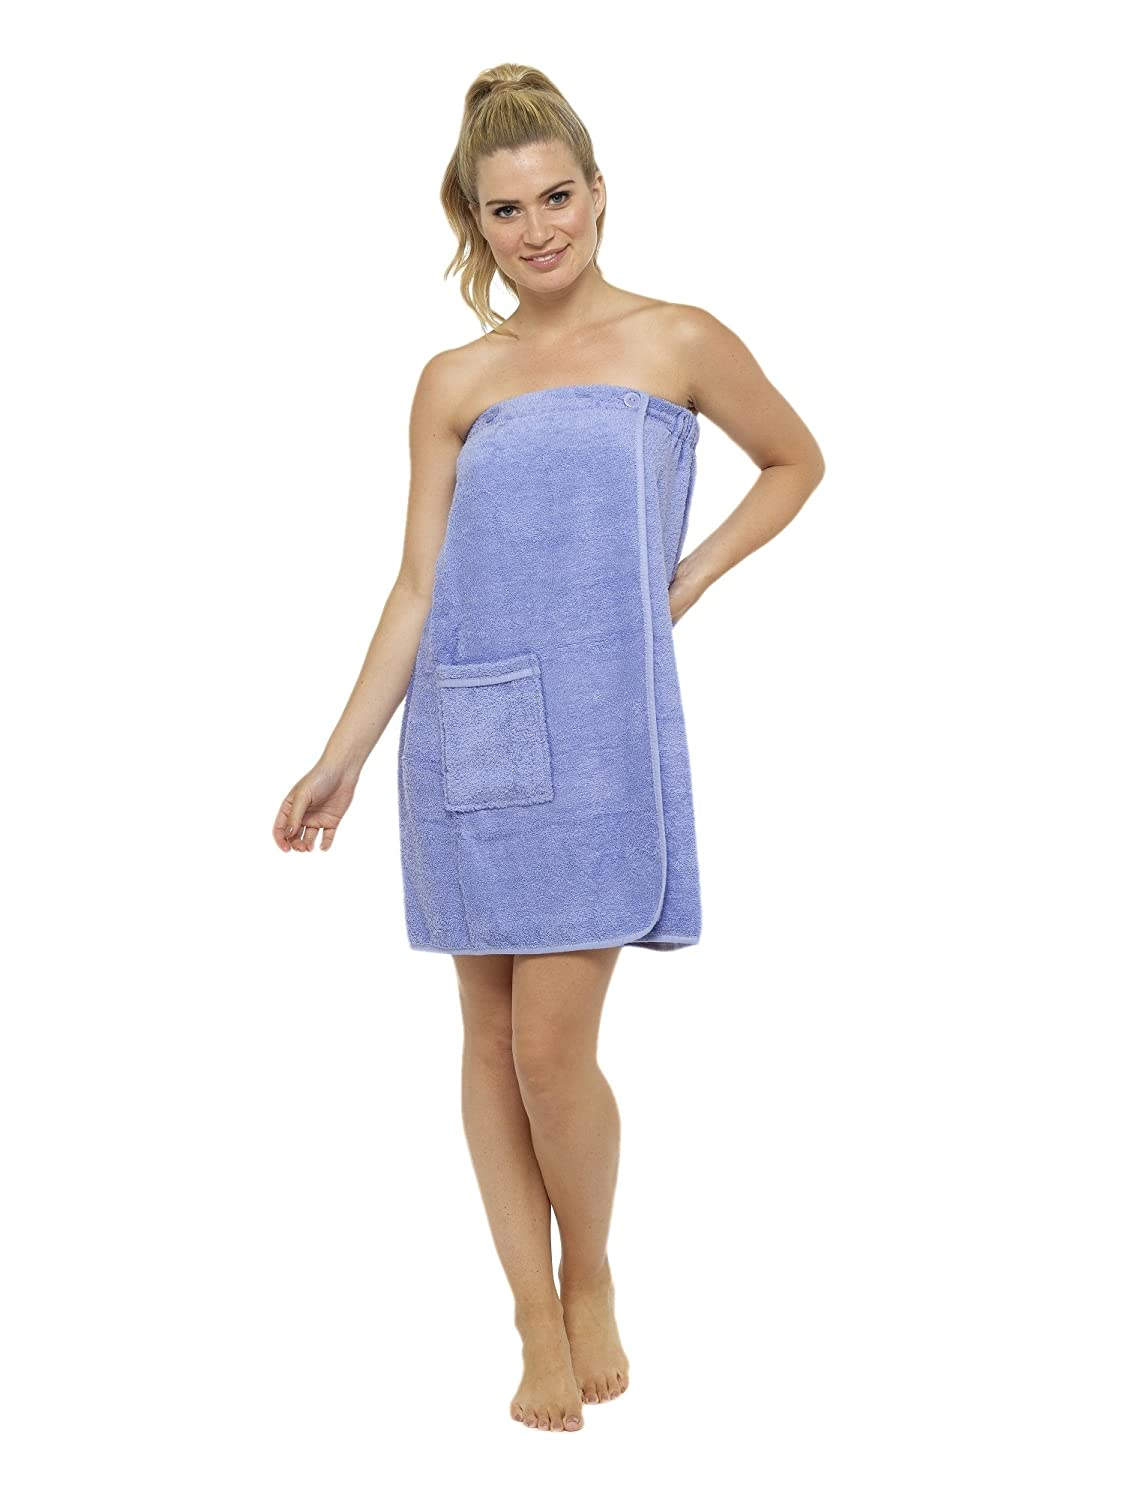 CityComfort Towel Wrap for Women 100% Cotton Highly Absorbent Terry Soft Sarong Towel Shower Spa Beach Gym Towelling Robe Cover-Up Dress